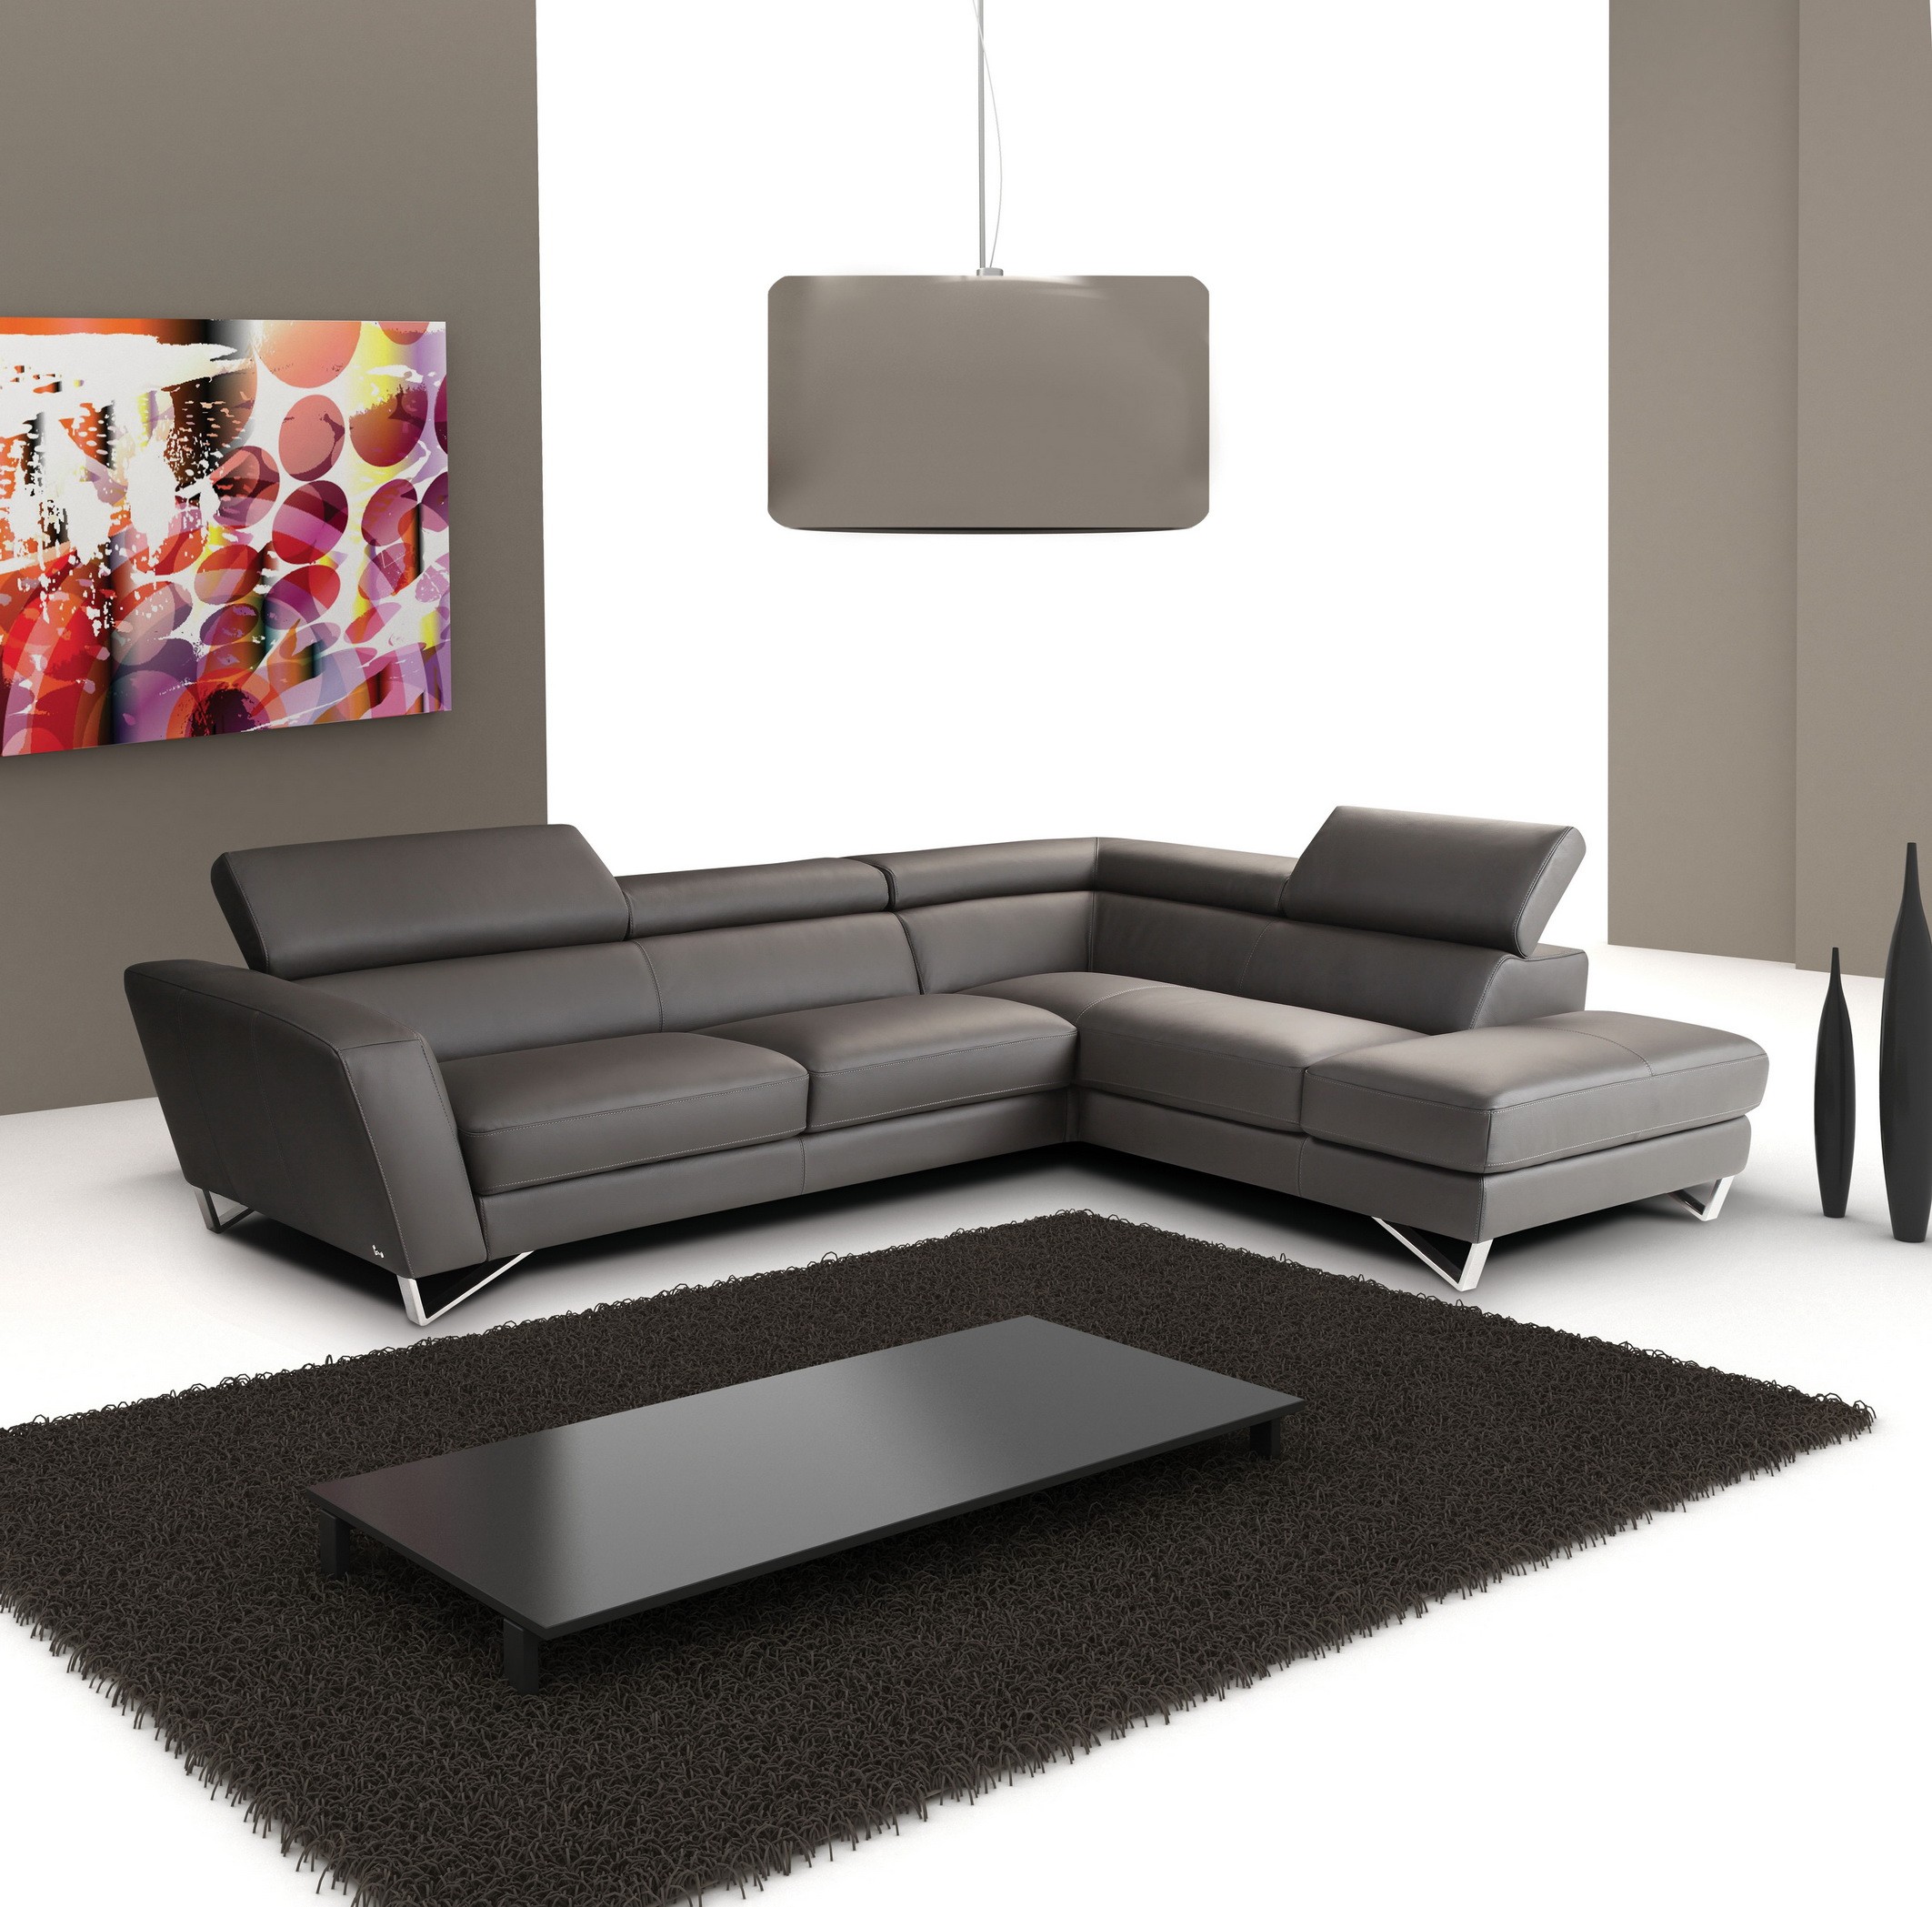 Mesmerizing black leather sectional for elegant living room design with black leather sectional sofa